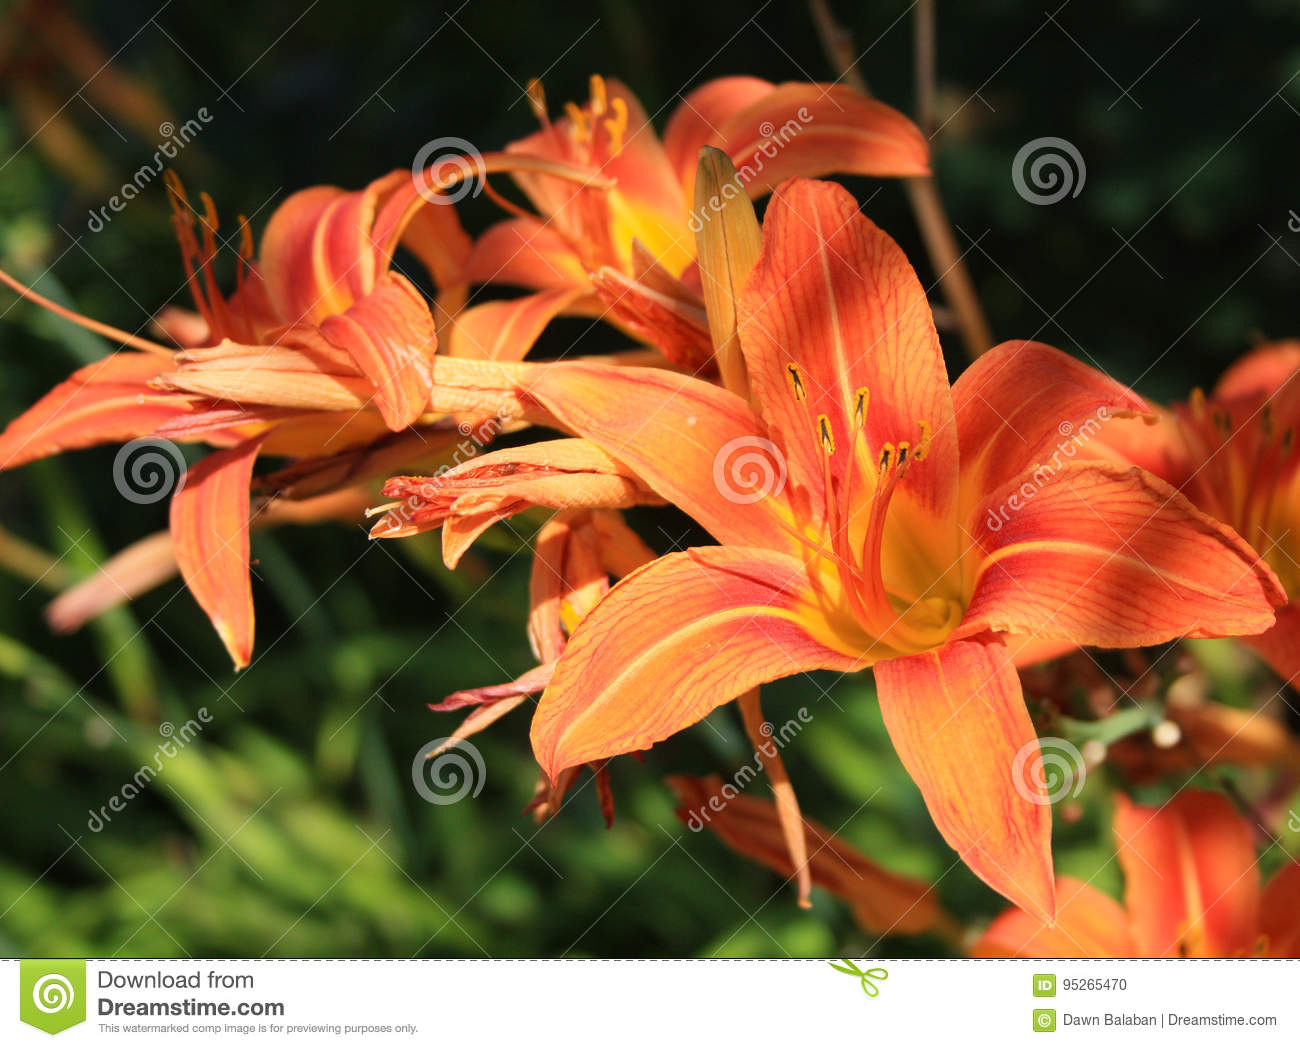 Orange tiger lilies flowers close up stock photo image of download comp izmirmasajfo